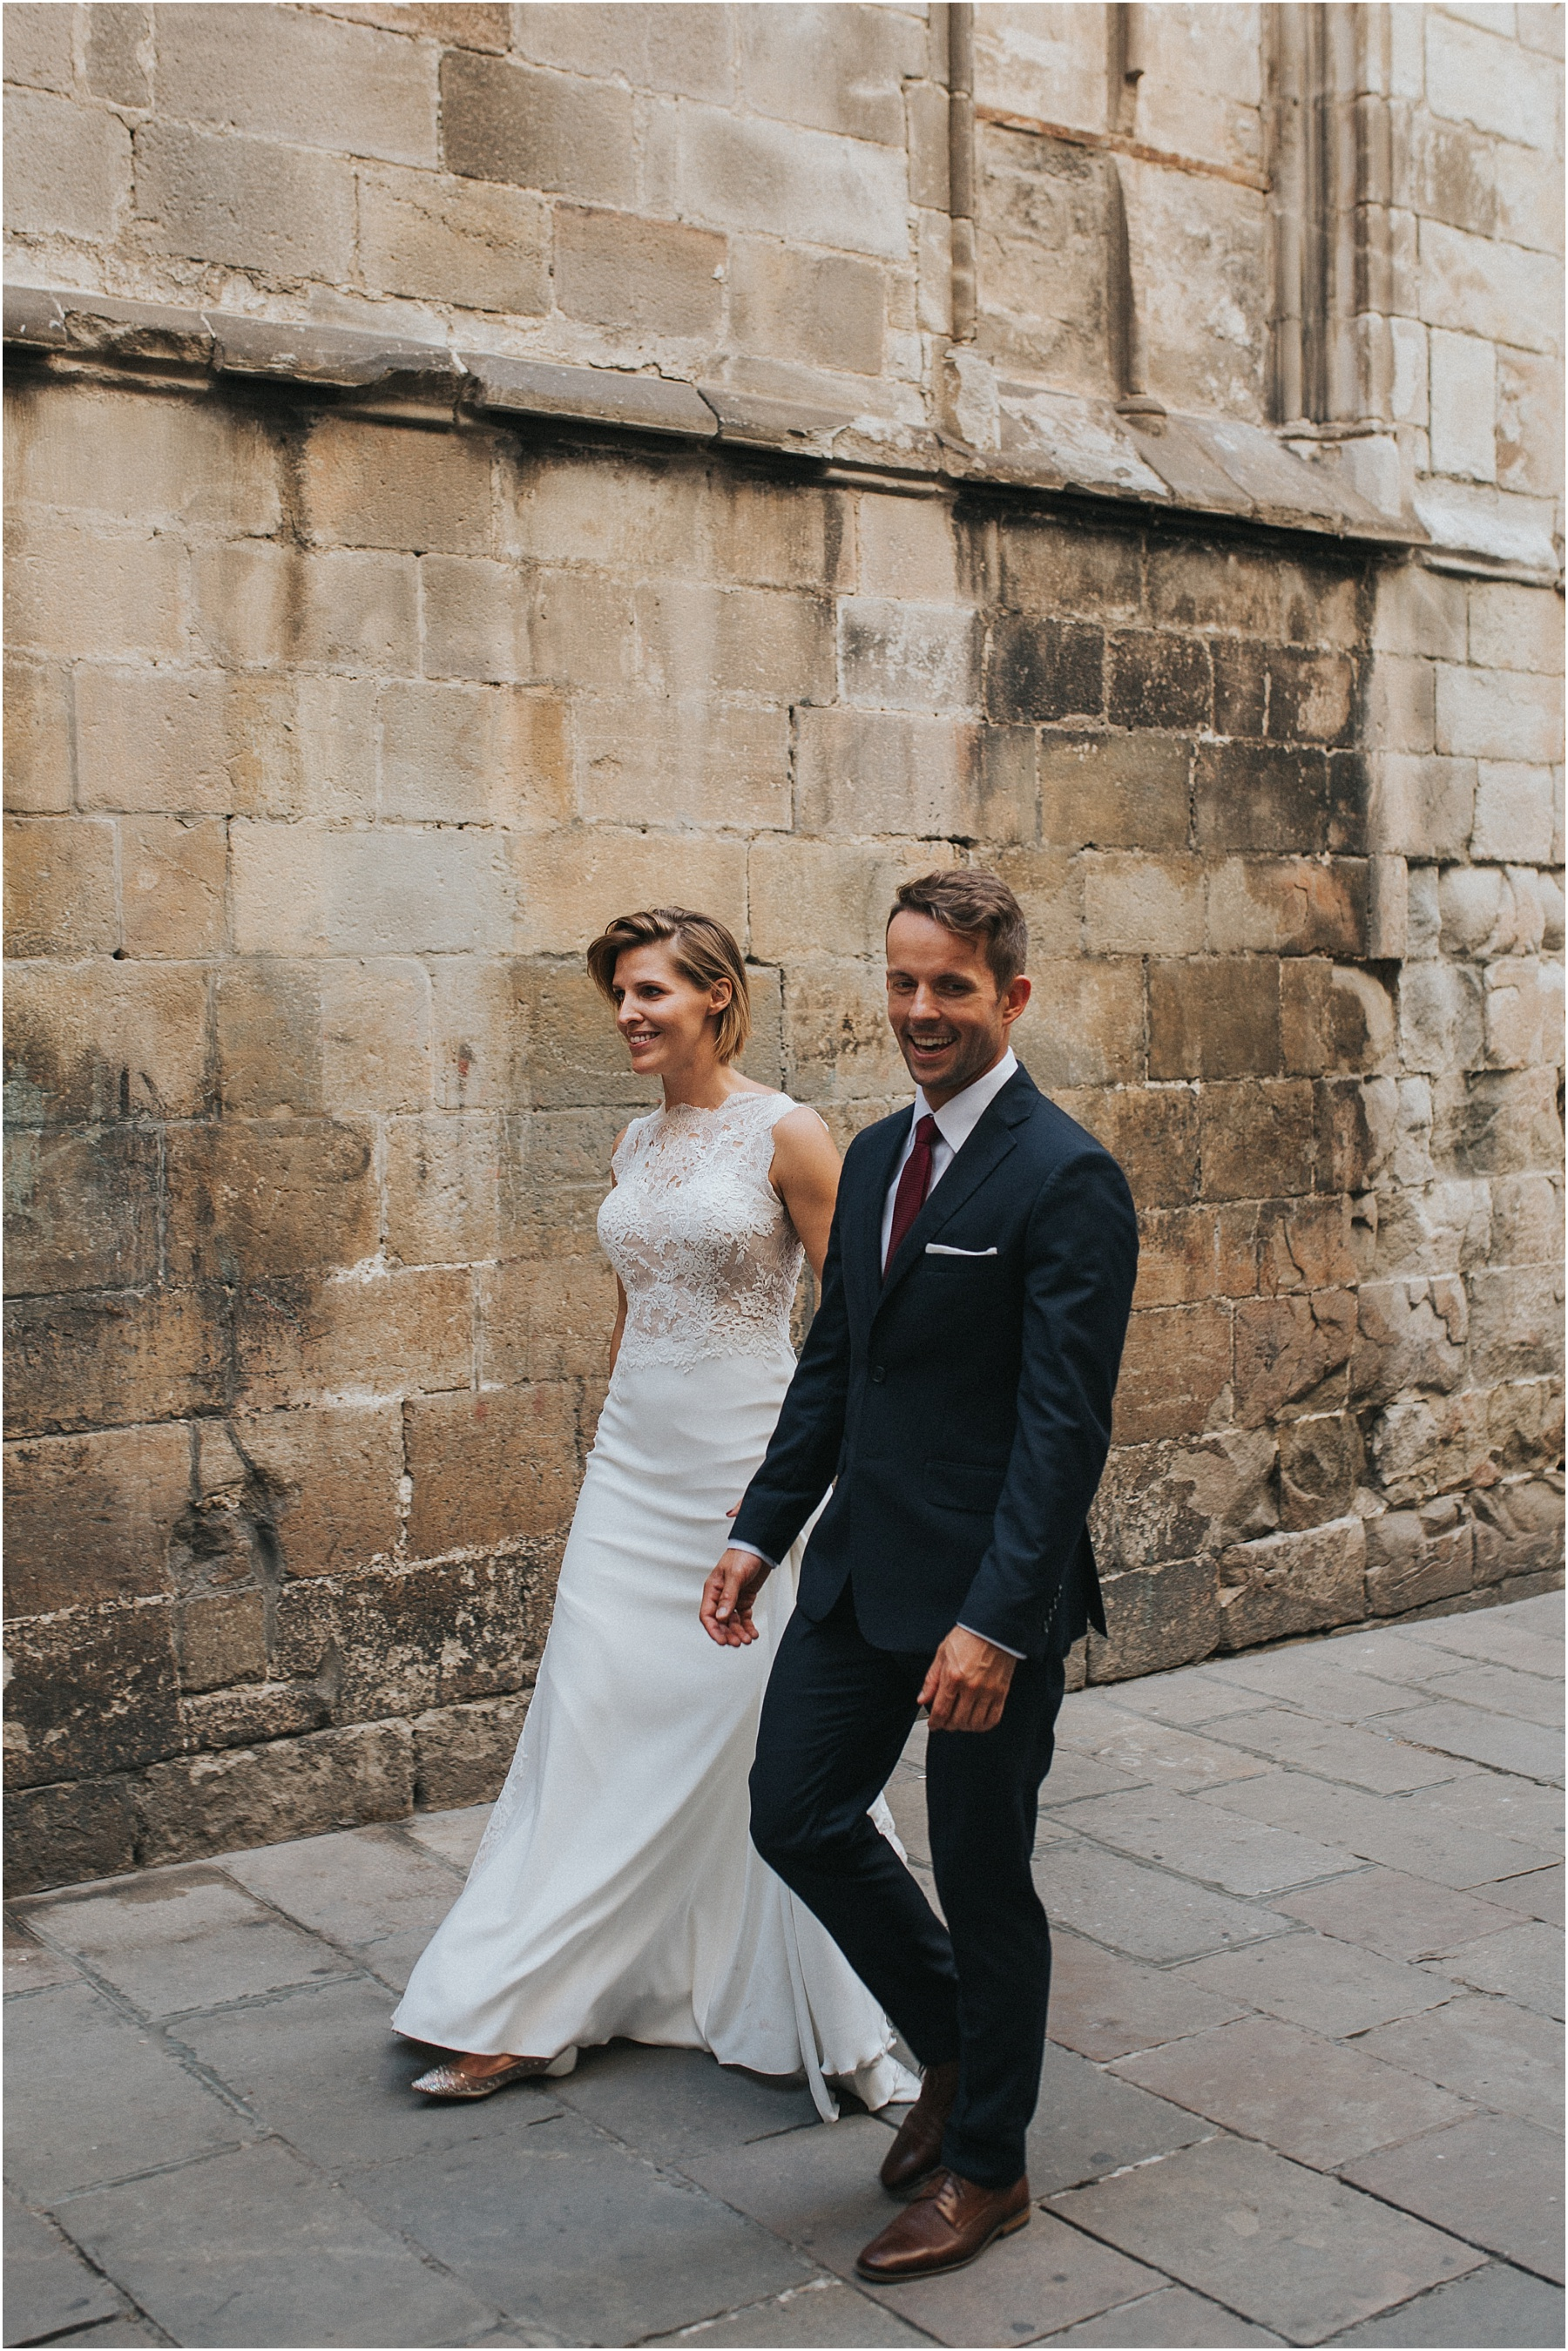 Destination photographer Angela Bloemsaat wedding barcelona spain (8)